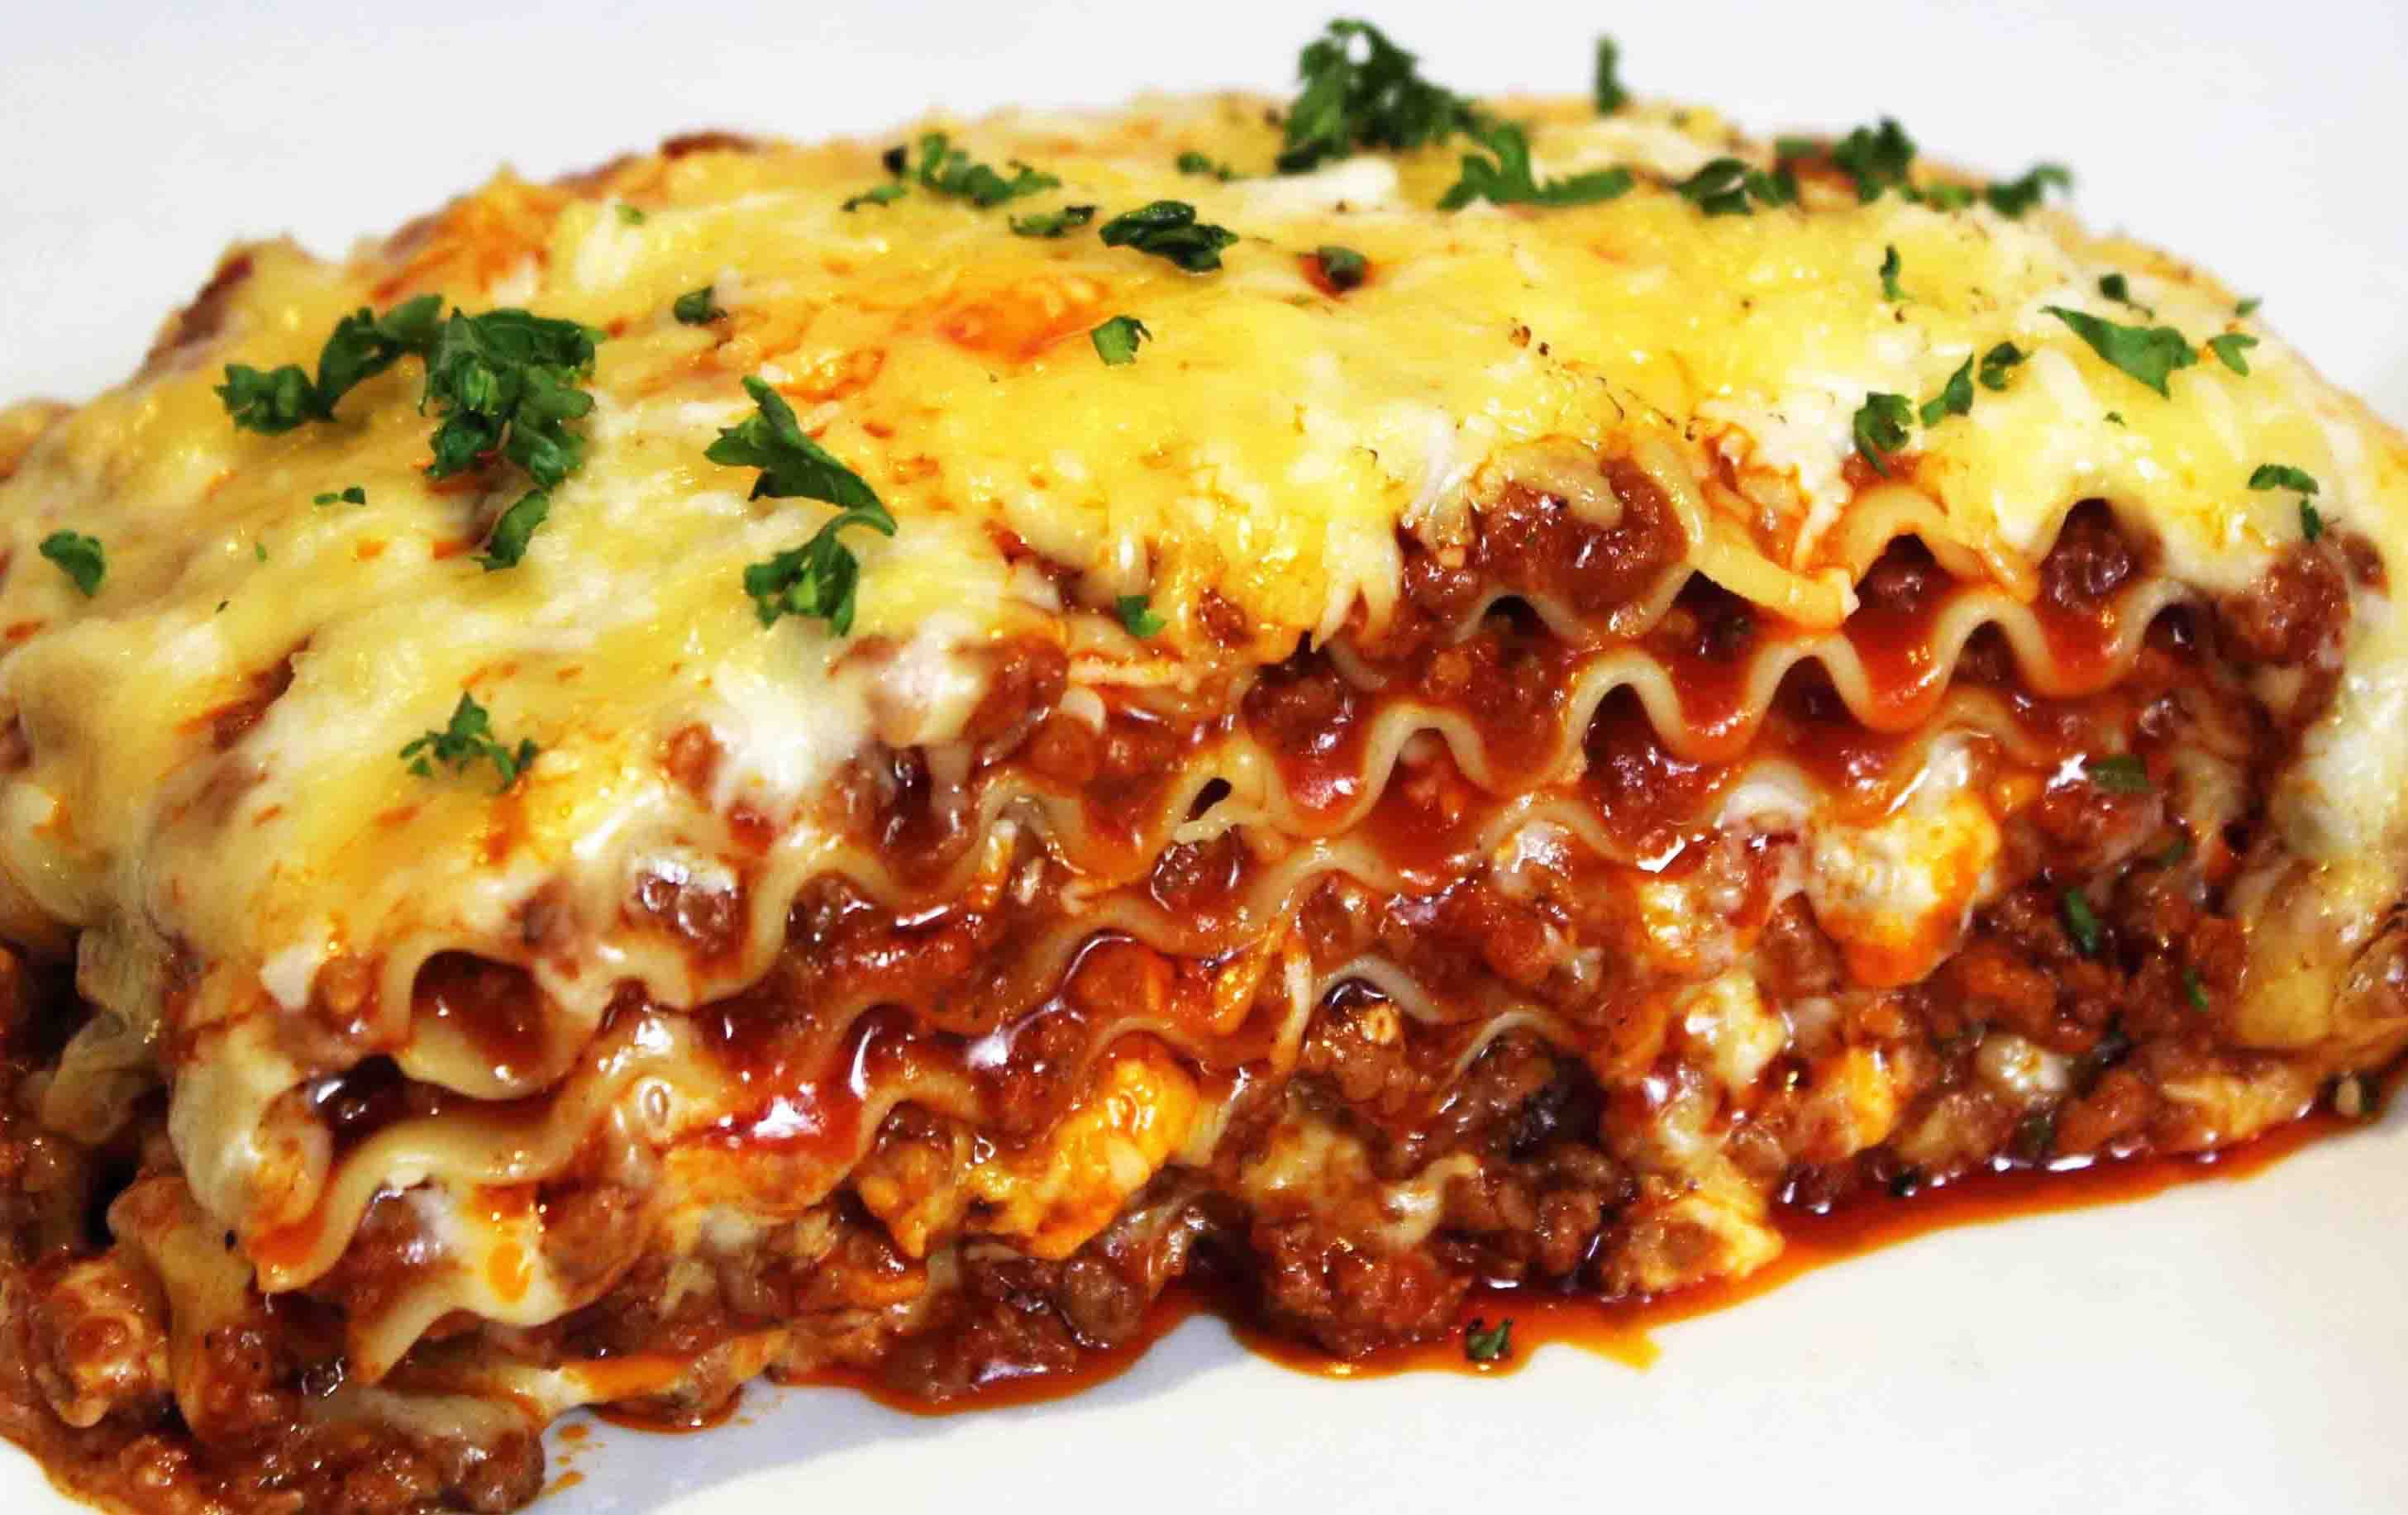 Pasta Lasagna Recipe Dishmaps : Meat Lasagna1 from www.dishmaps.com size 2913 x 1833 jpeg 178kB